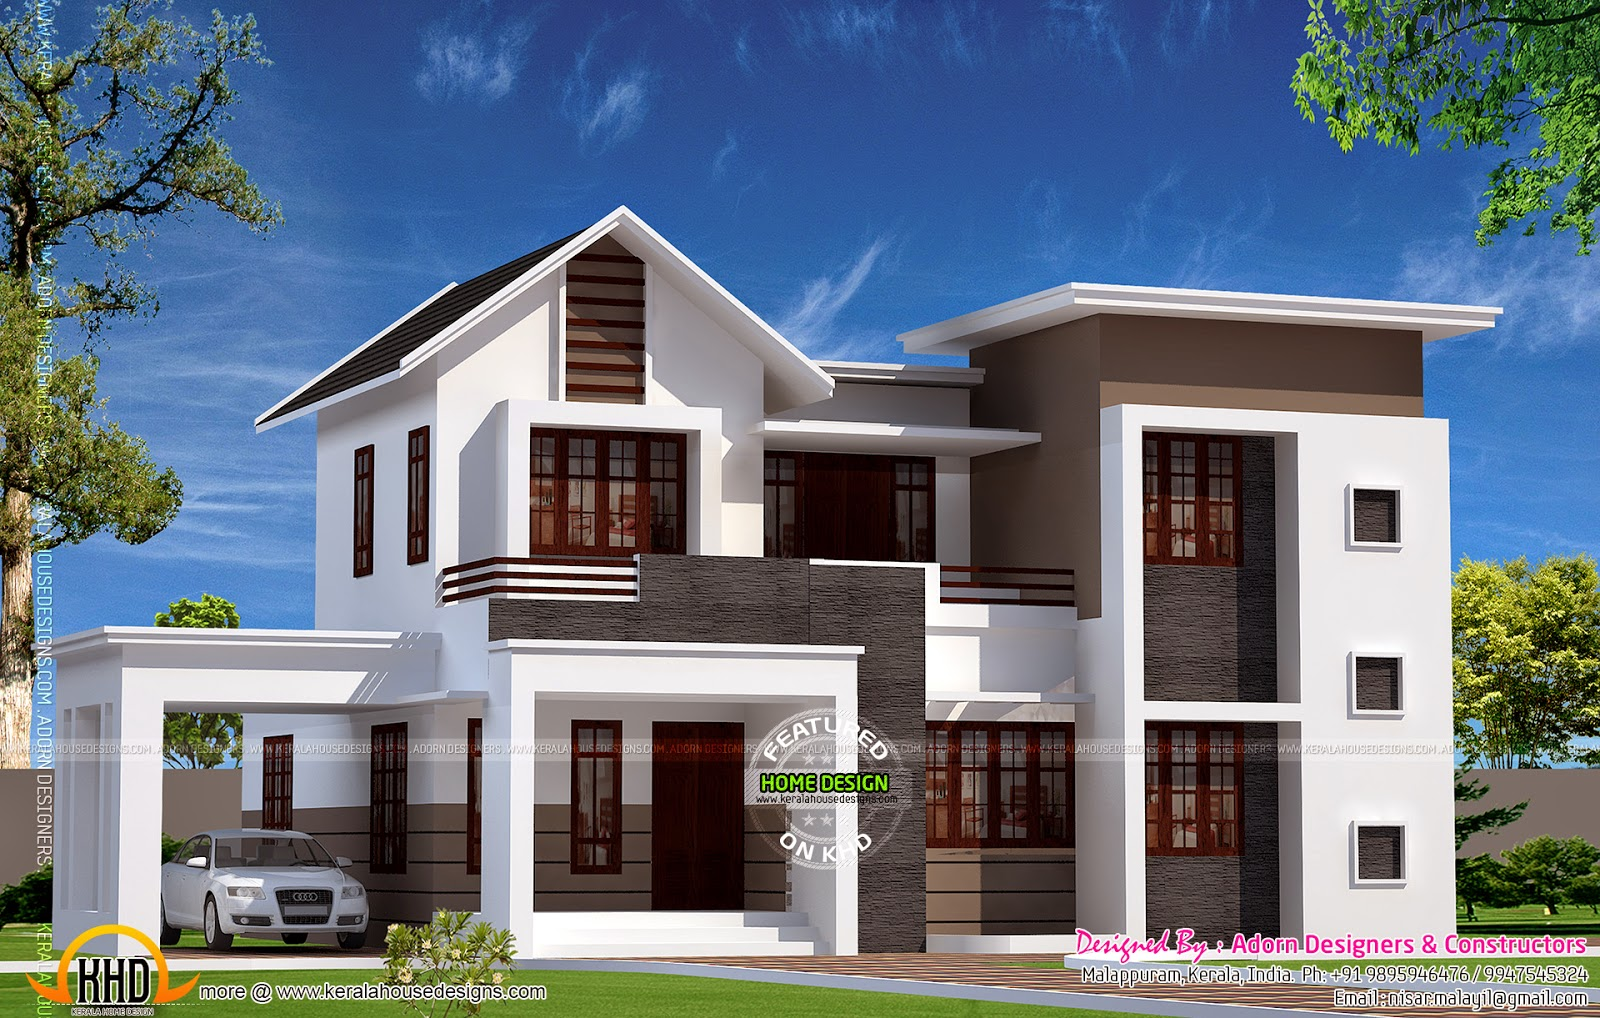 New house design in 1900 sq feet kerala home design and for House plans with photos in kerala style